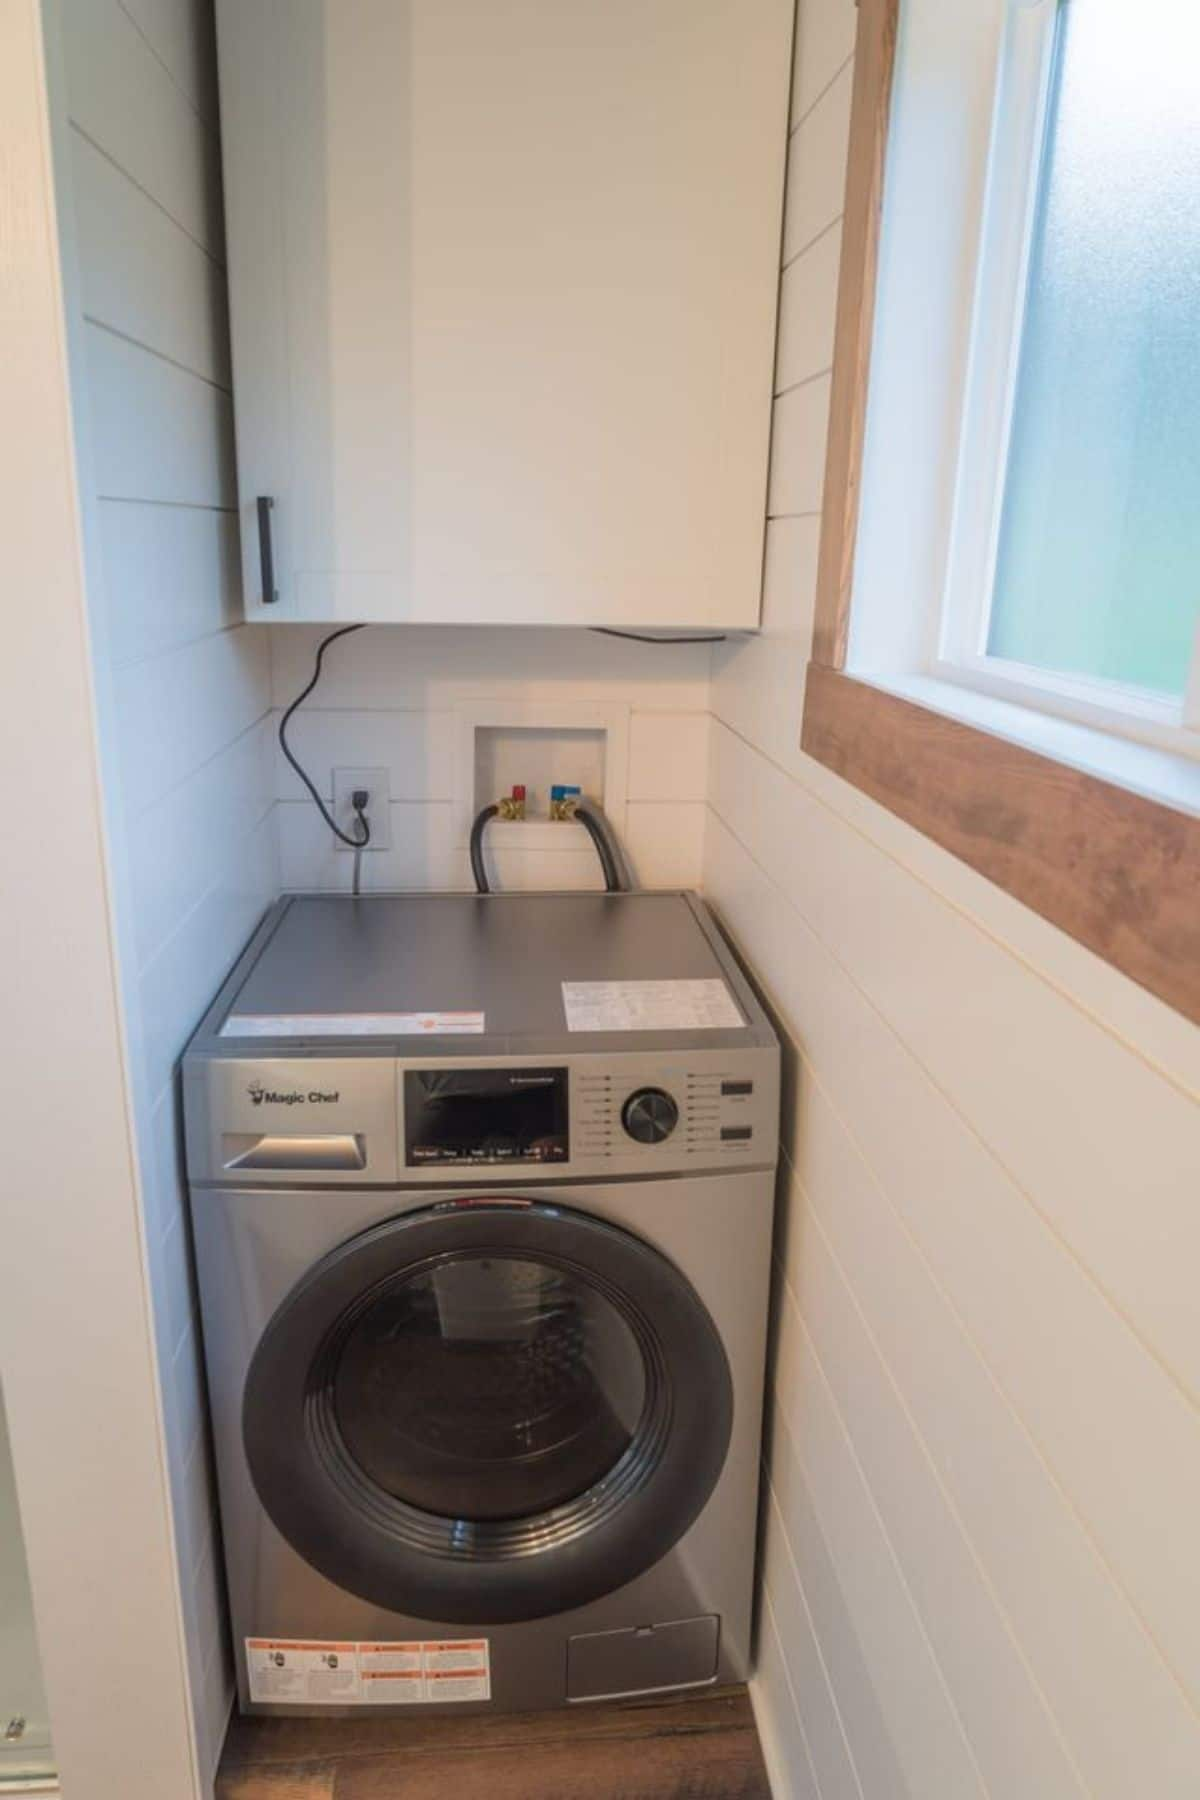 Combination washer and dryer below white cabinet tucked into corner by window